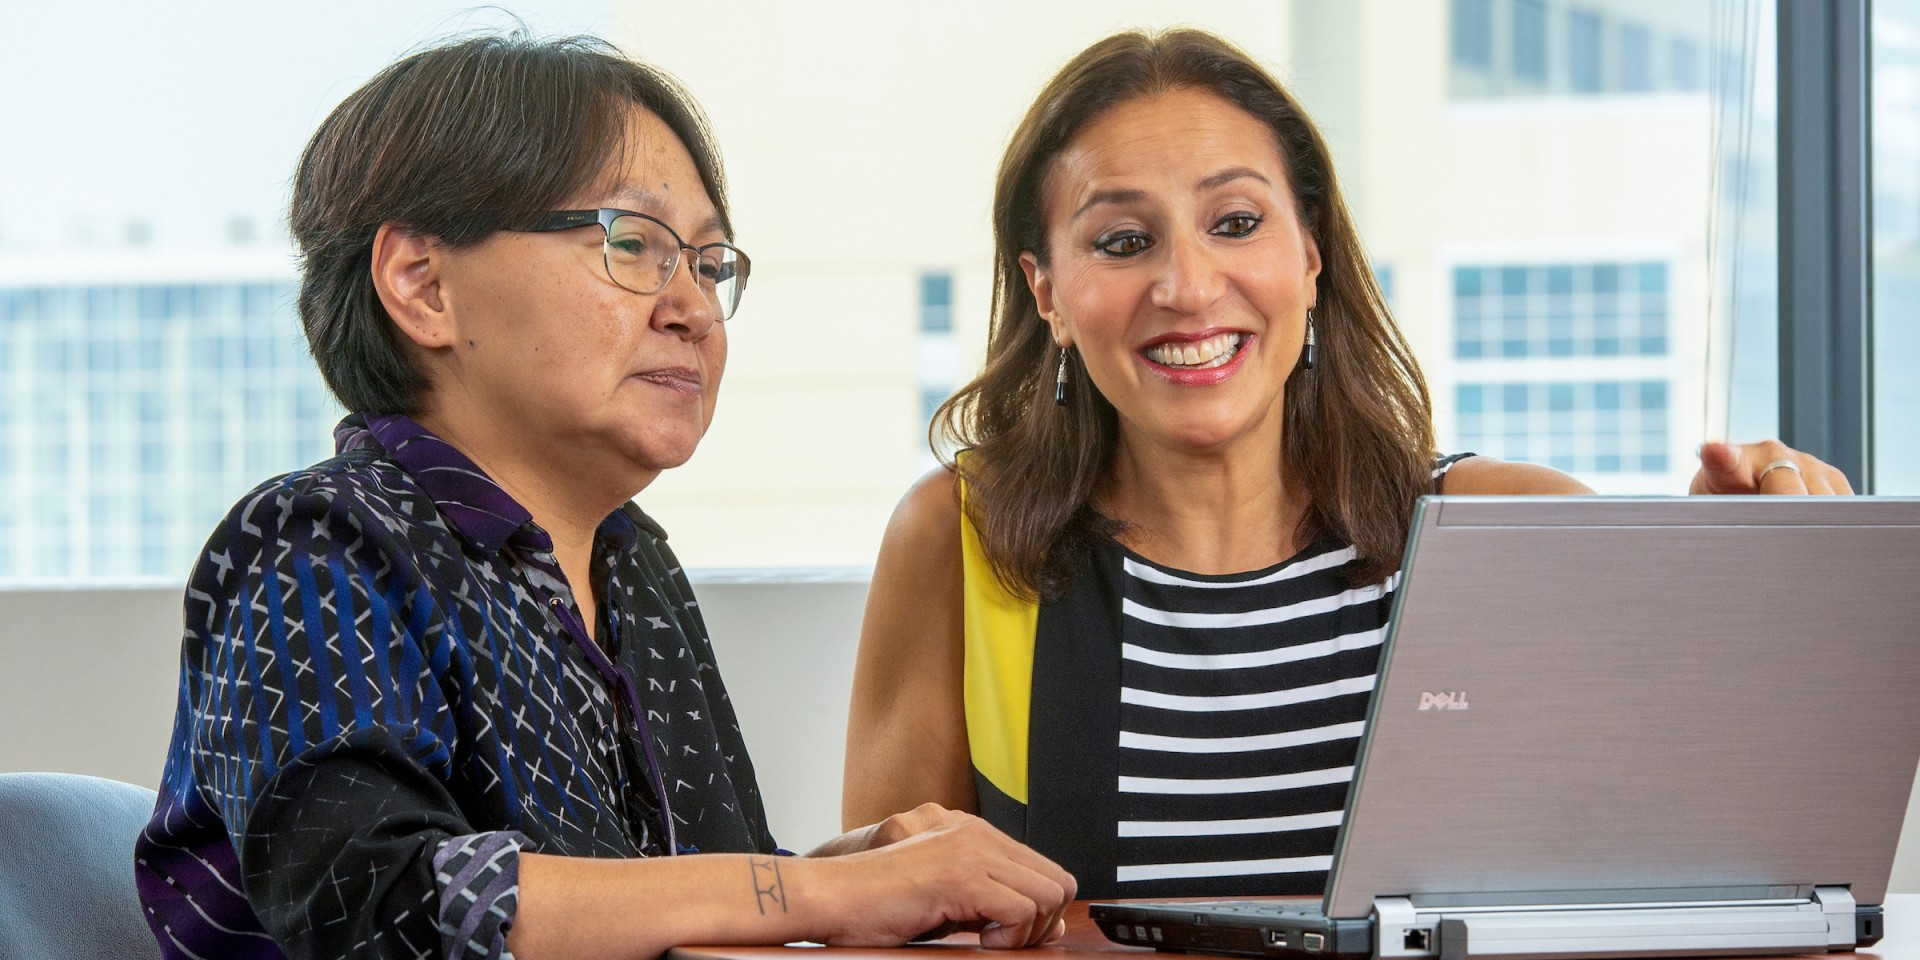 Sangita Sharma (right) received $1 million in federal funding for a five-year study aimed at improving the health of Indigenous mothers and infants in Canada's North. (Photo: Richard Siemens)